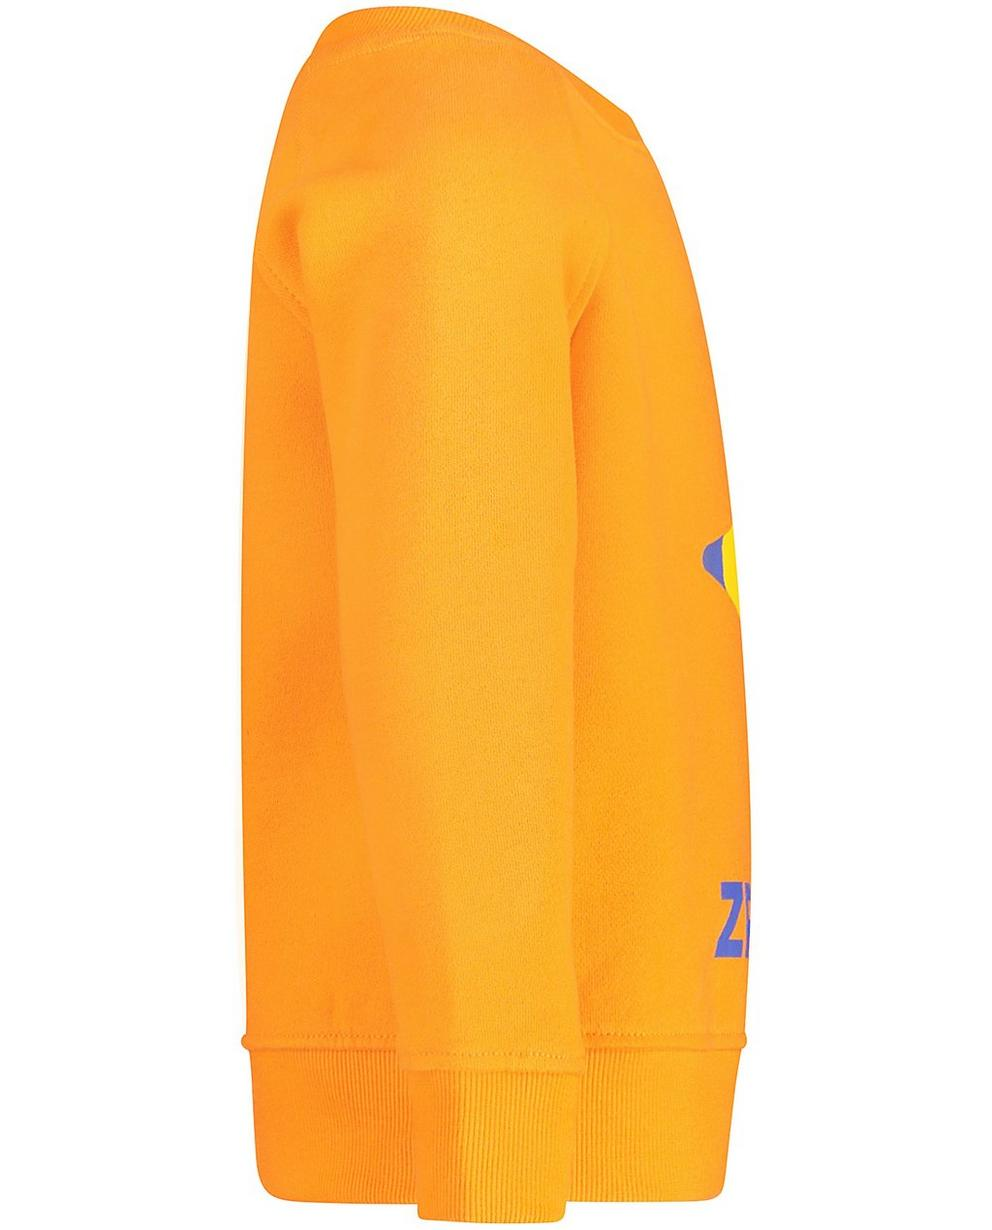 Sweaters - ORM - Oranje sweater